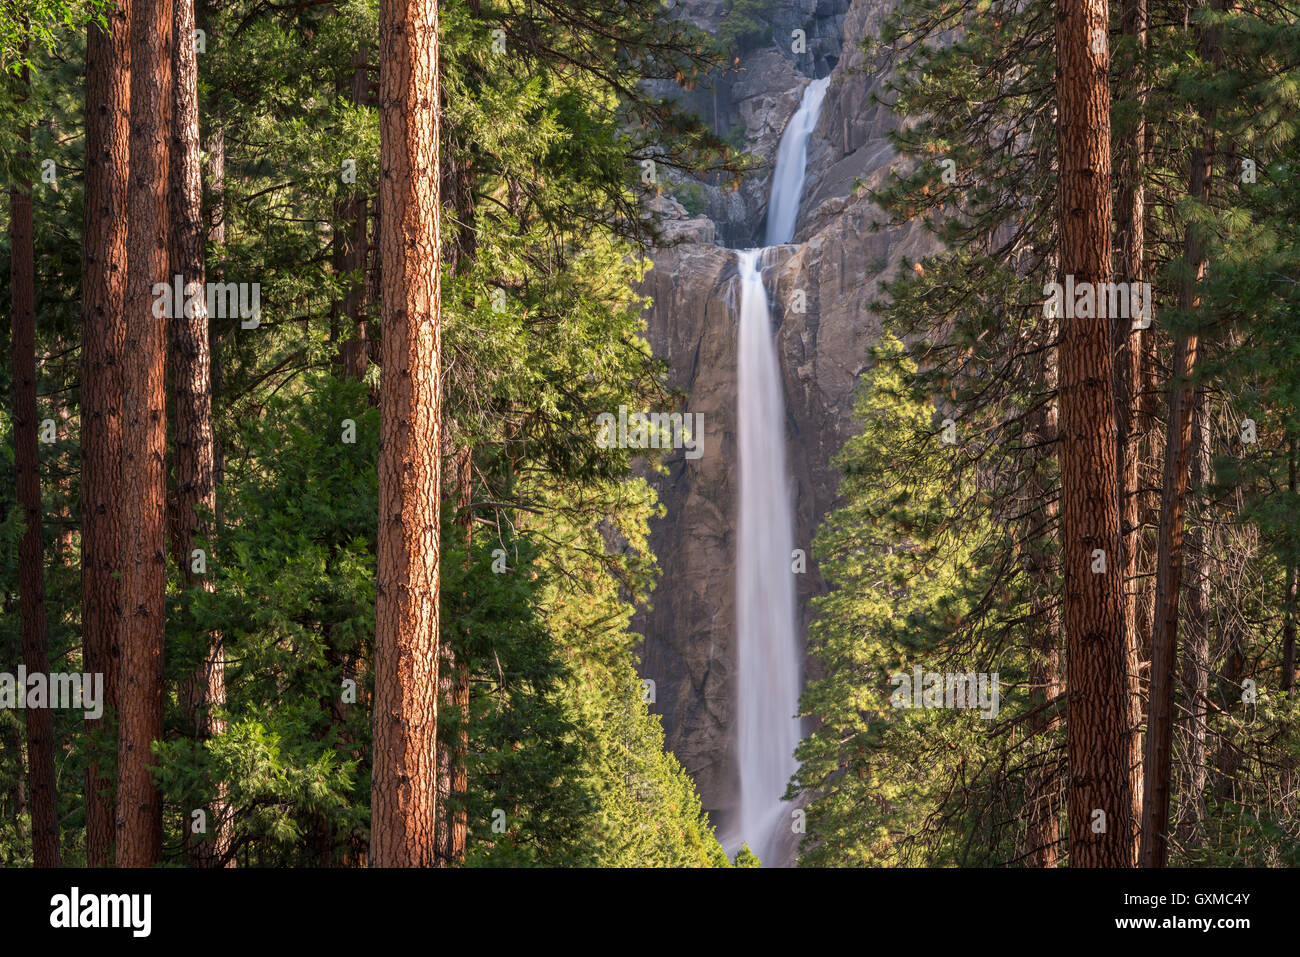 Yosemite Falls inférieure par l'conifères de la vallée Yosemite, California, USA. Printemps (juin) Photo Stock